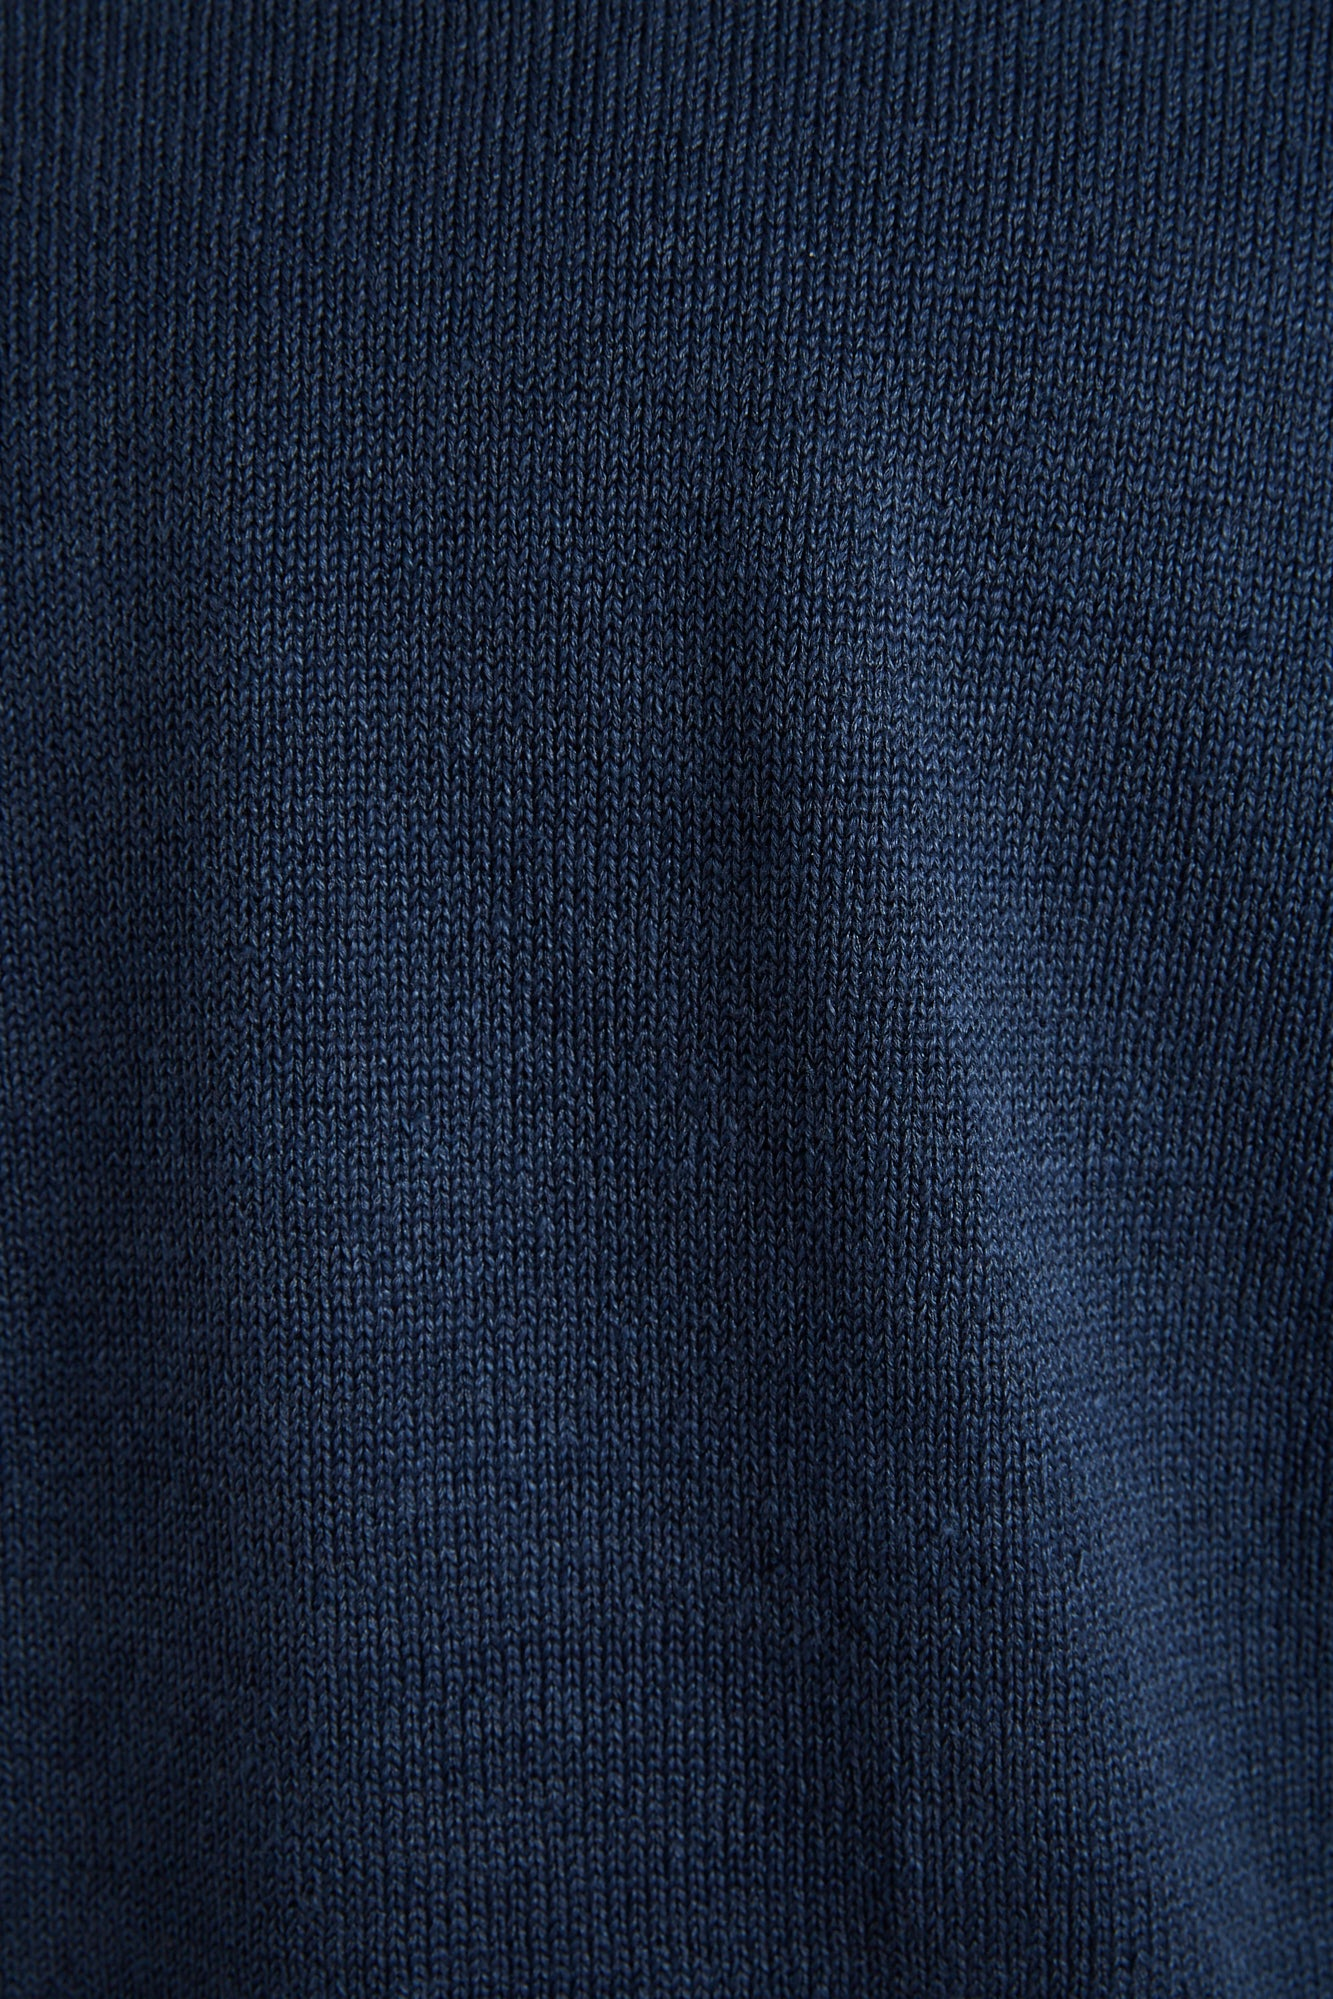 Inis Meain Blueberry Crewneck Sweater